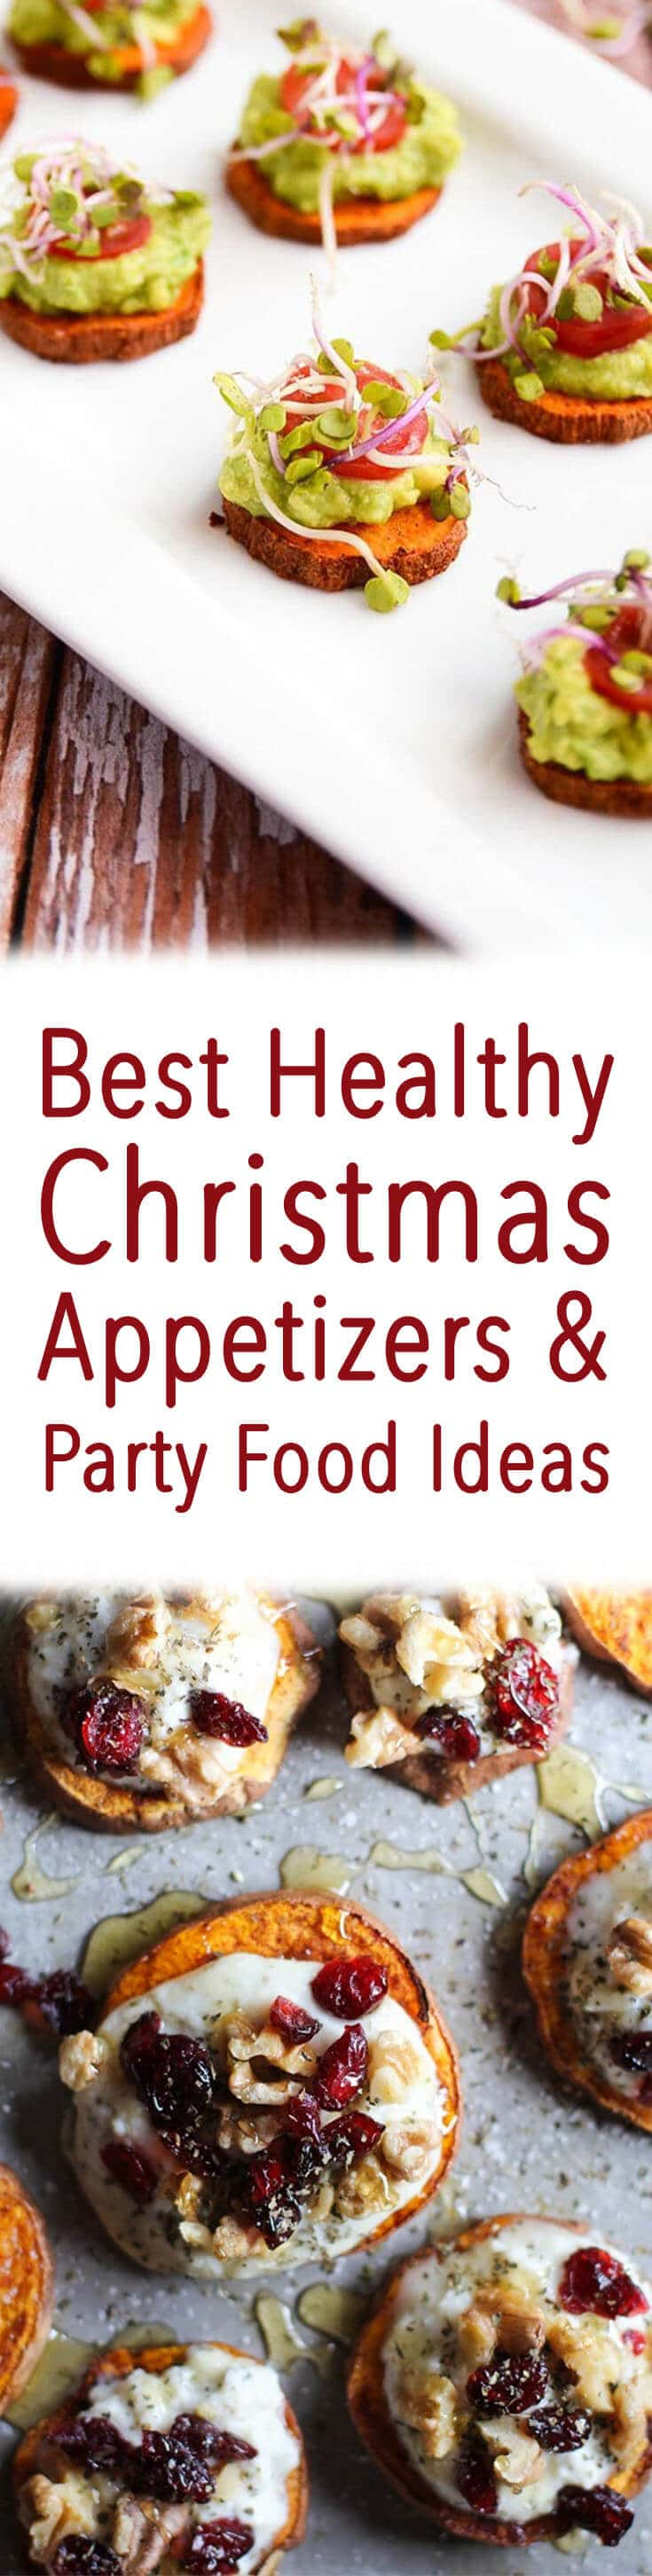 Healthy Christmas Appetizers Pinterest 16 Best Healthy Christmas Appetizers Party Food Ideas